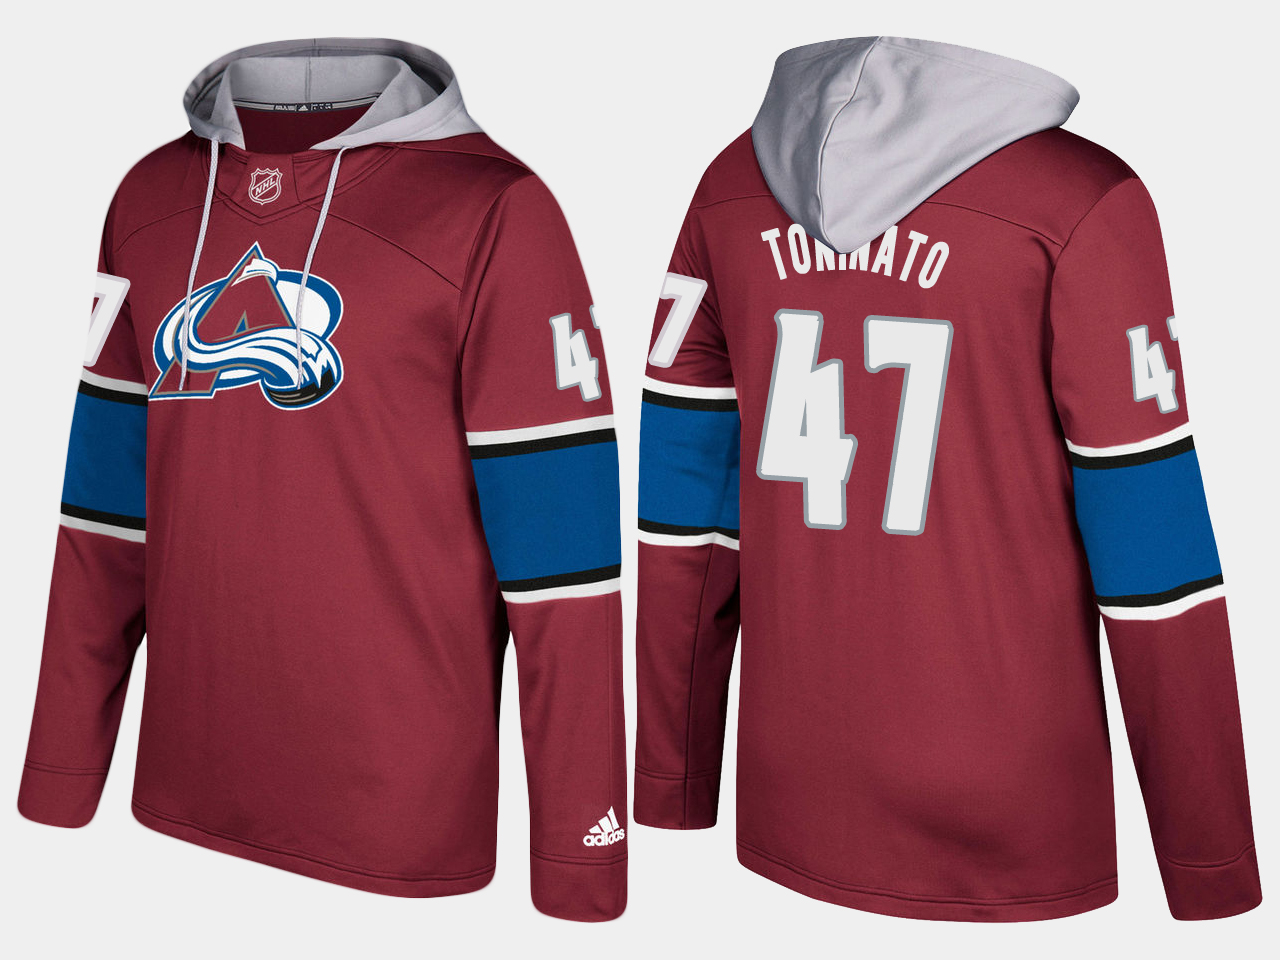 Men NHL Colorado avalanche 47 dominic toninato burgundy hoodie